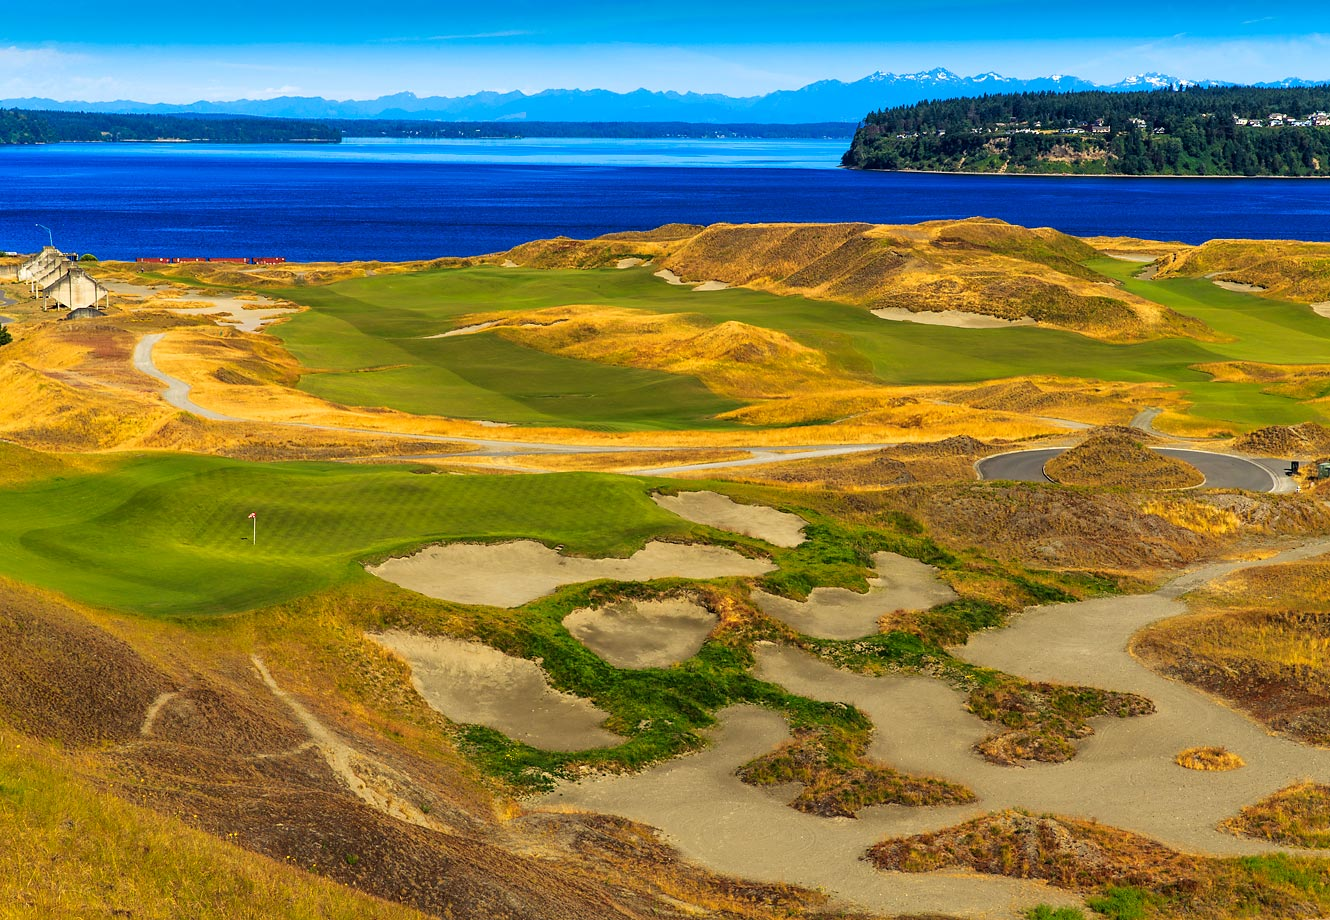 The par-3 ninth hole at Chambers Bay, known as 'Olympus', features two different tees, one of which will sit about 100 feet above the green and will necessitate the most severe downhill shot of any in U.S. Open history.